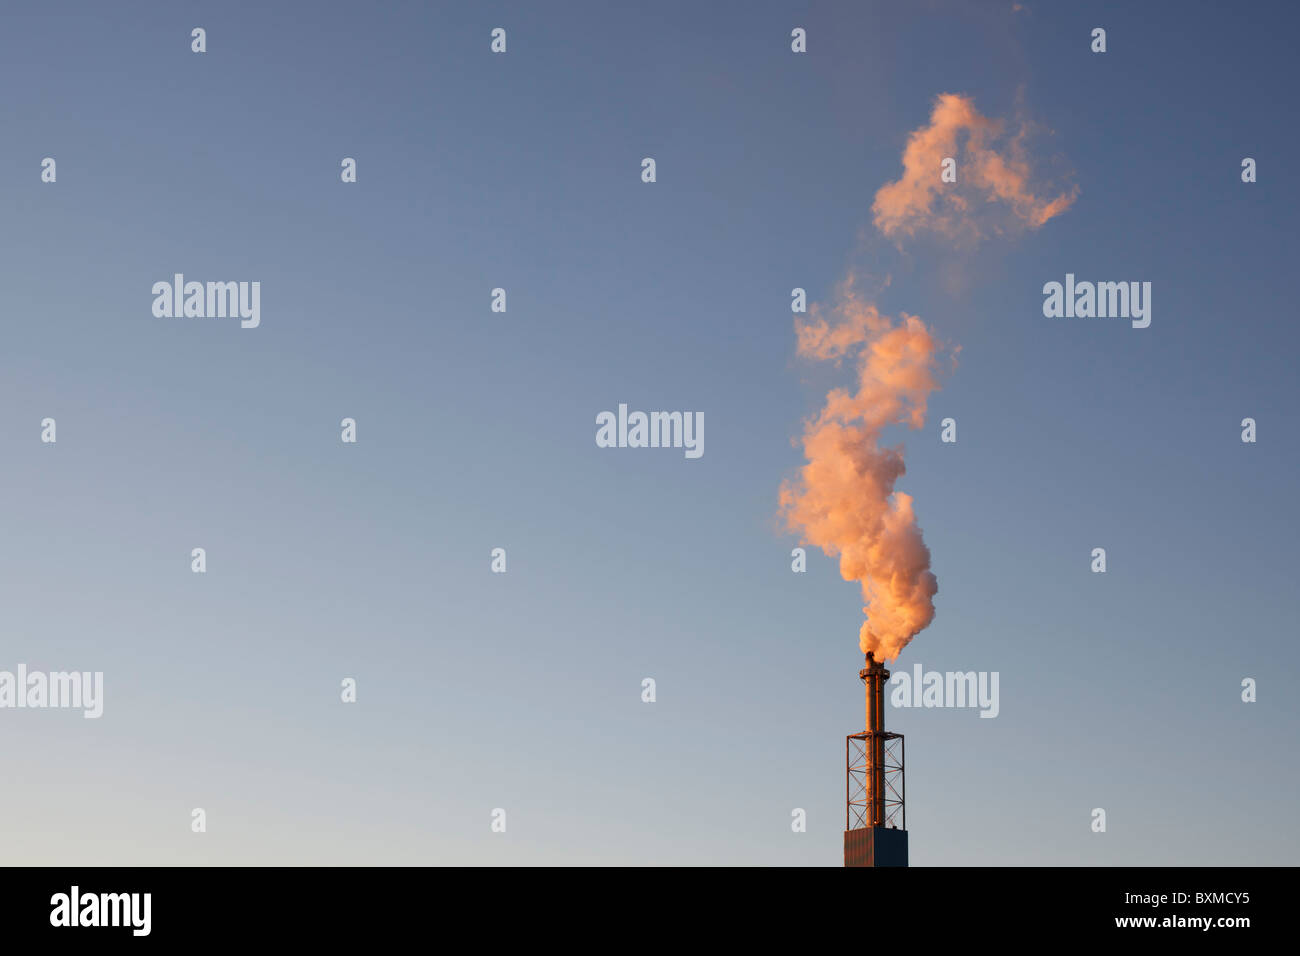 Air pollution from an industrial smokestack. - Stock Image